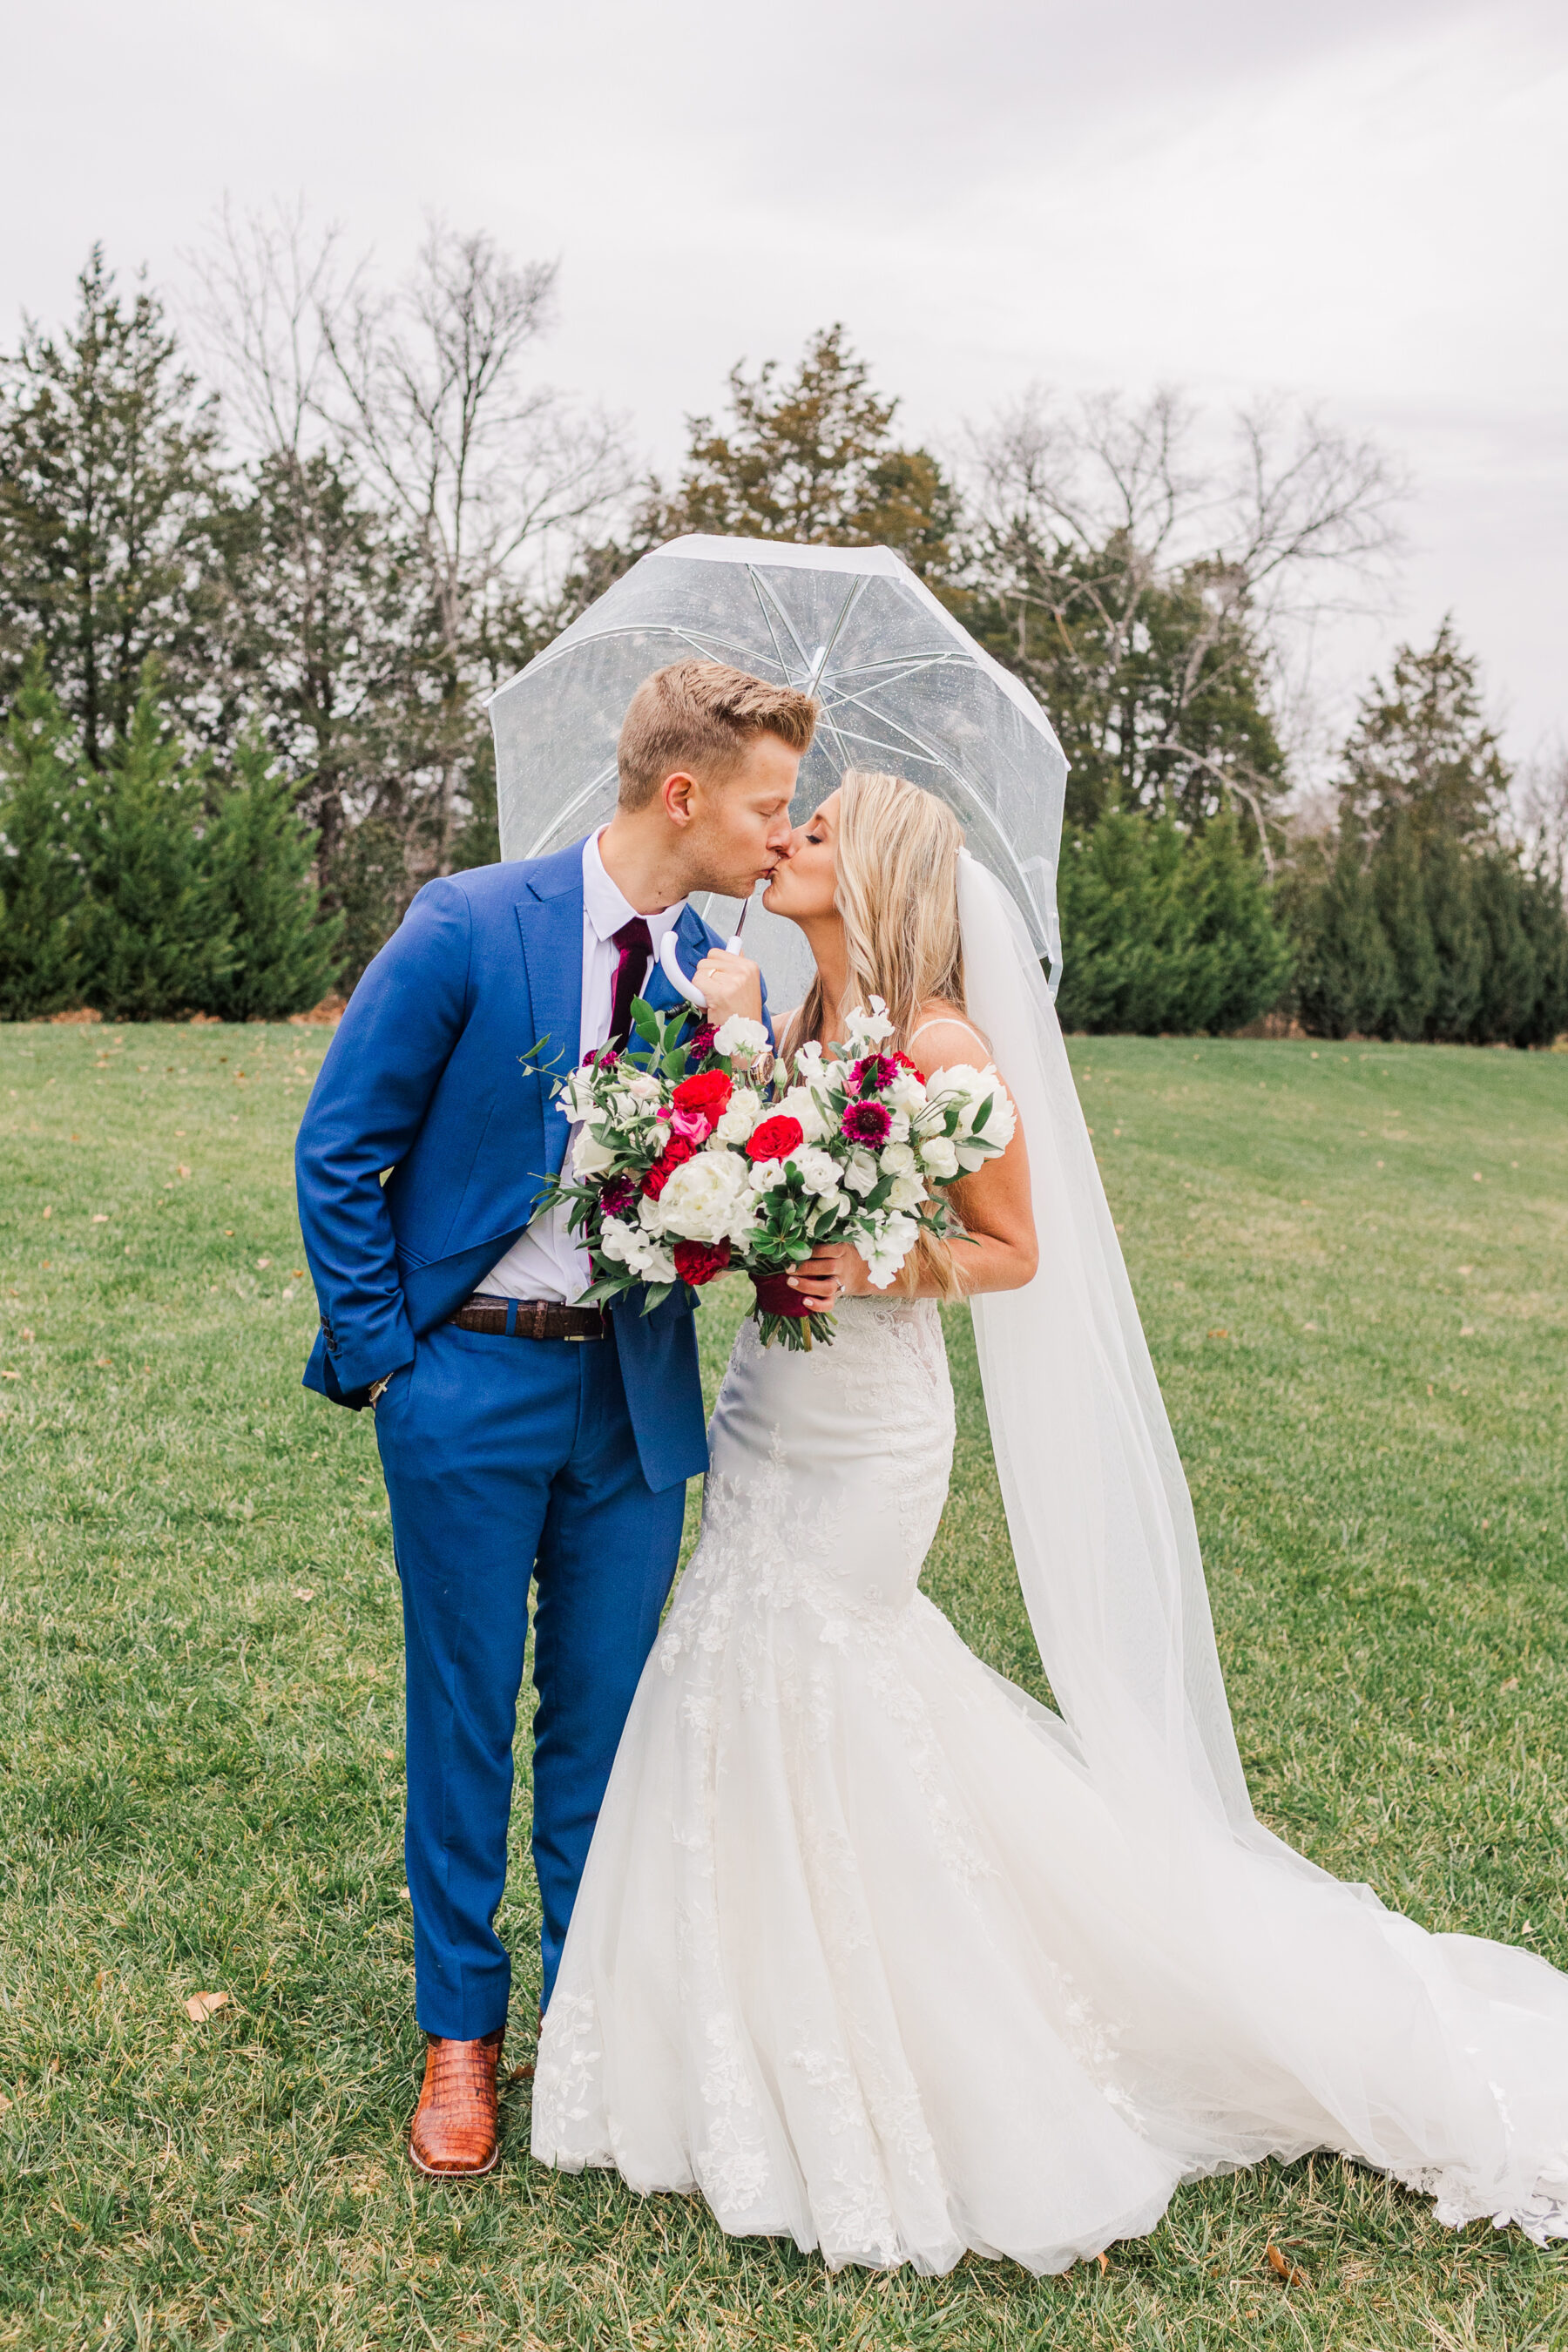 Rainy wedding day photography by Amy Allmand | Nashville Bride Guide